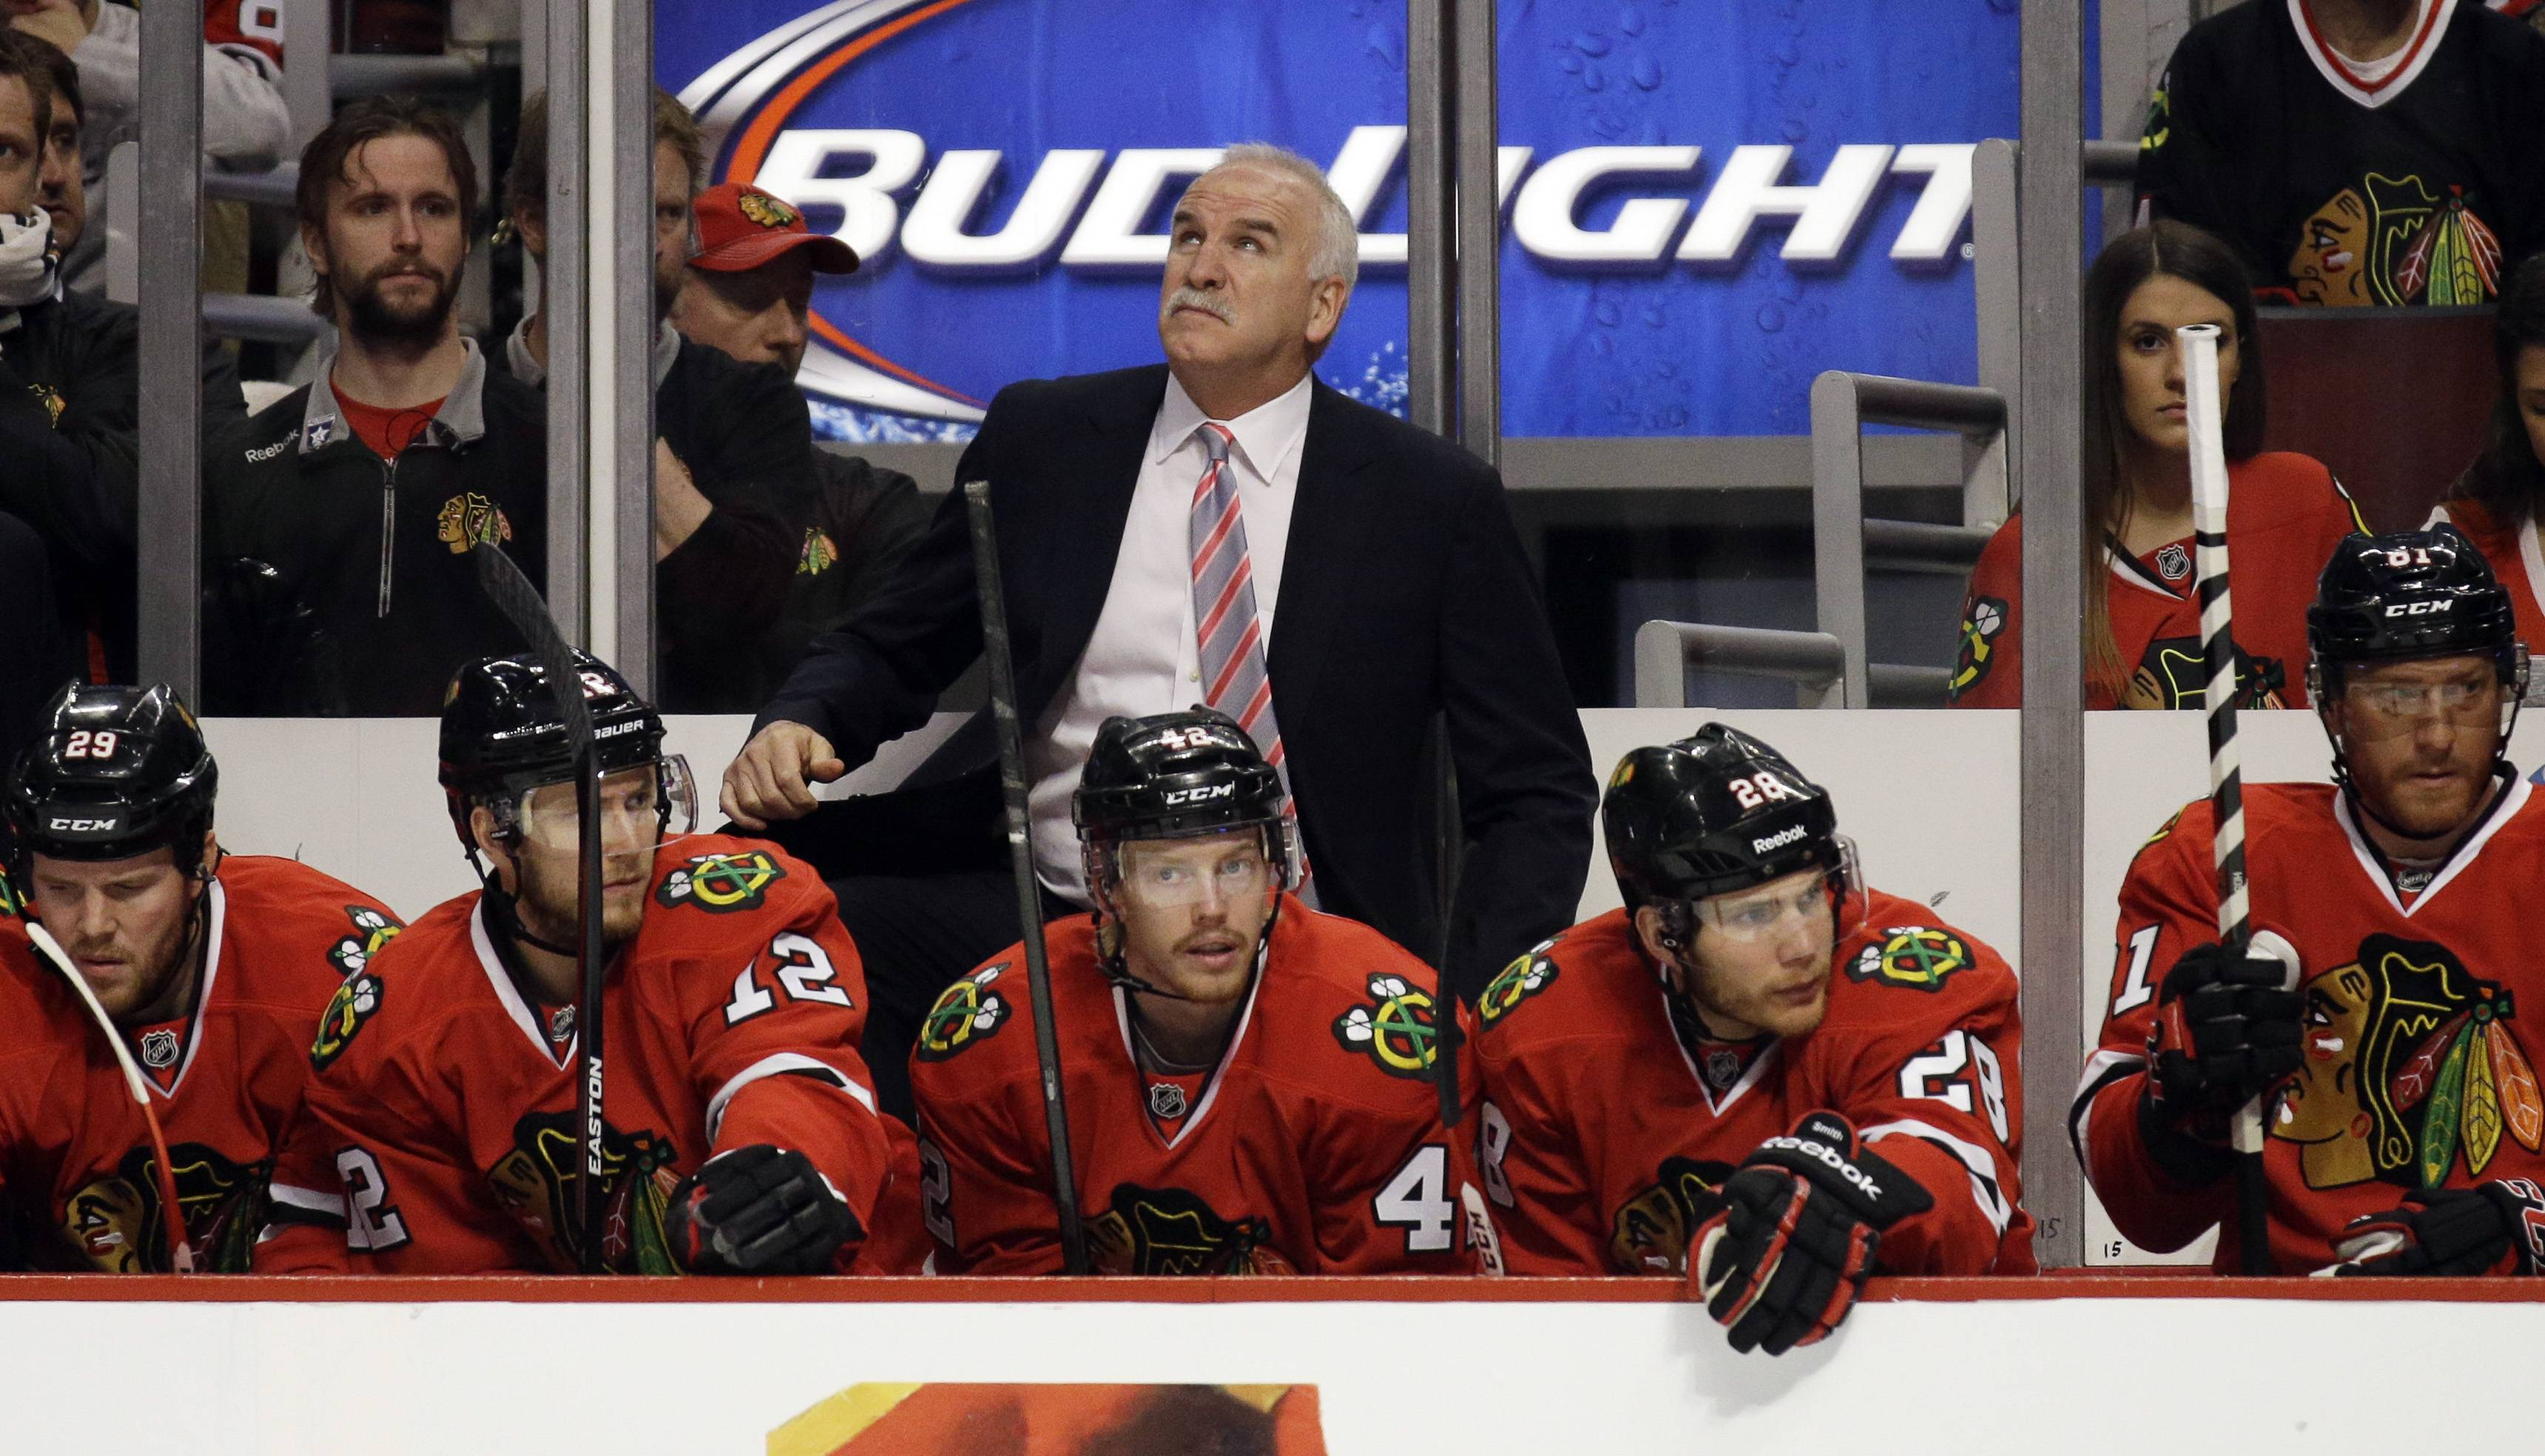 Quenneville compares this team to 2 Cup-winning squads